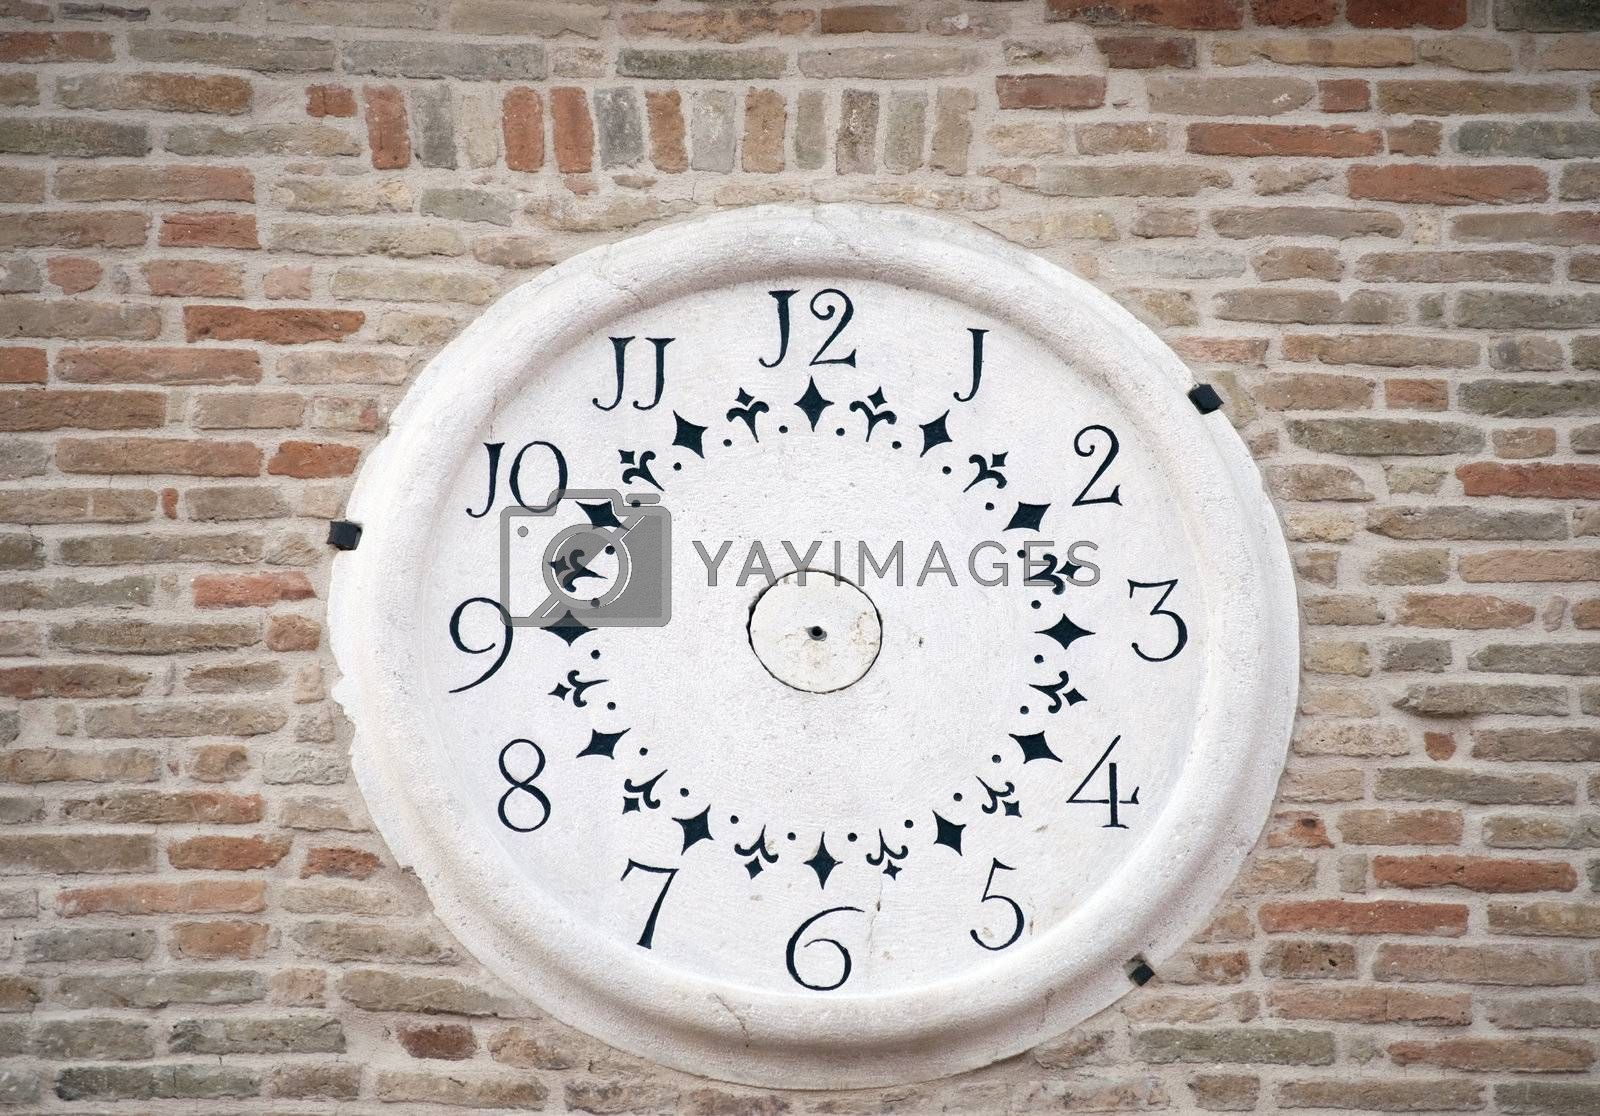 Wall Clock on the facade of an ancient construction.